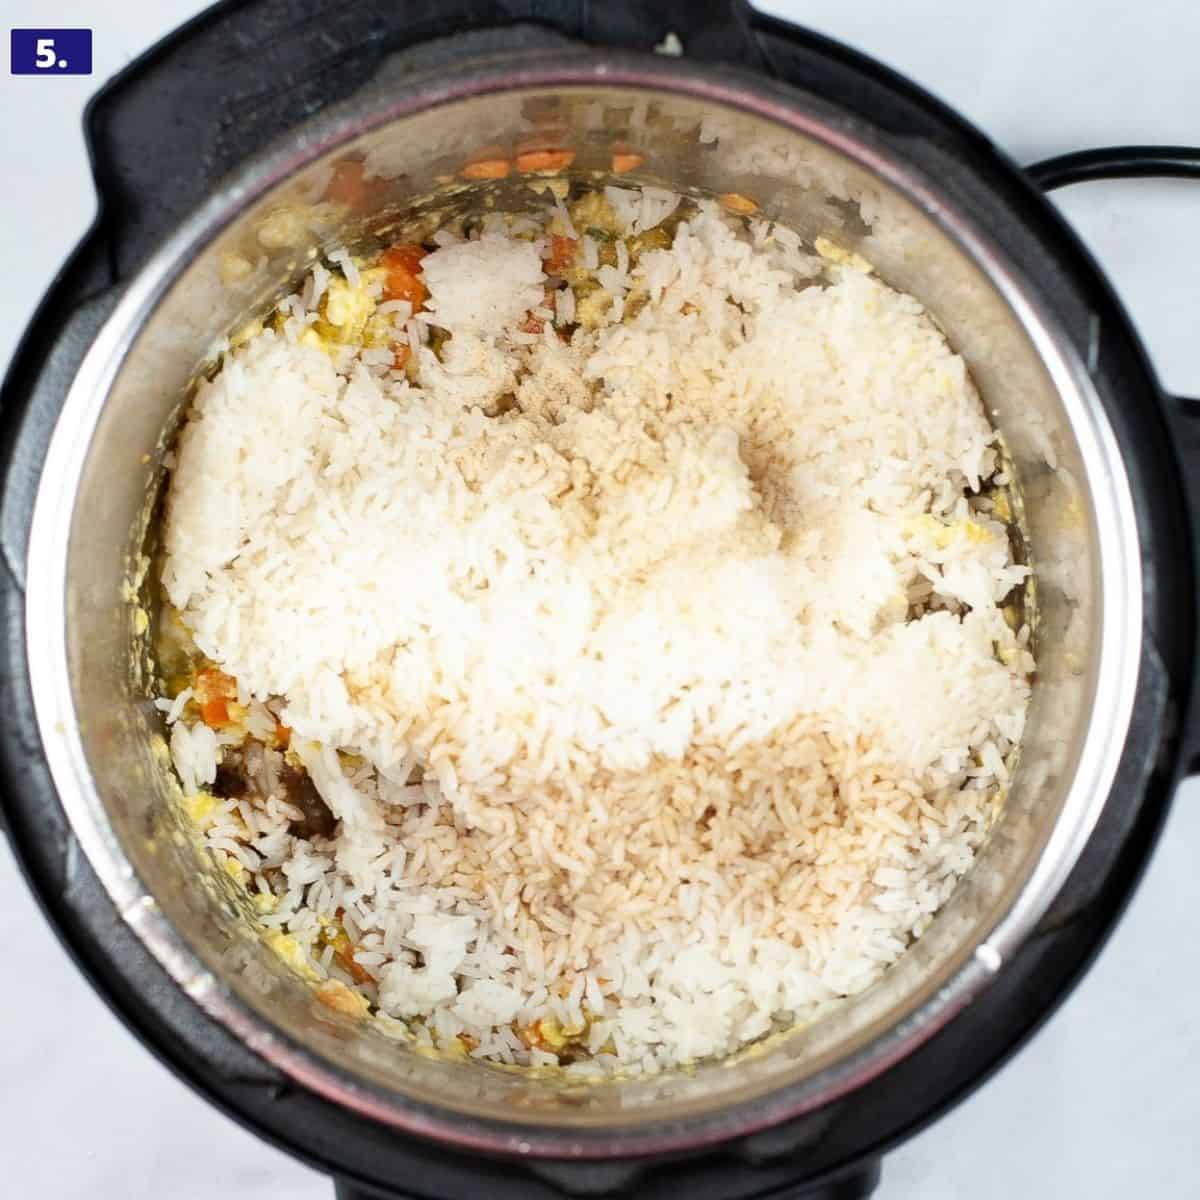 An instant pot filled with rice, egg, veggies to make fried rice.